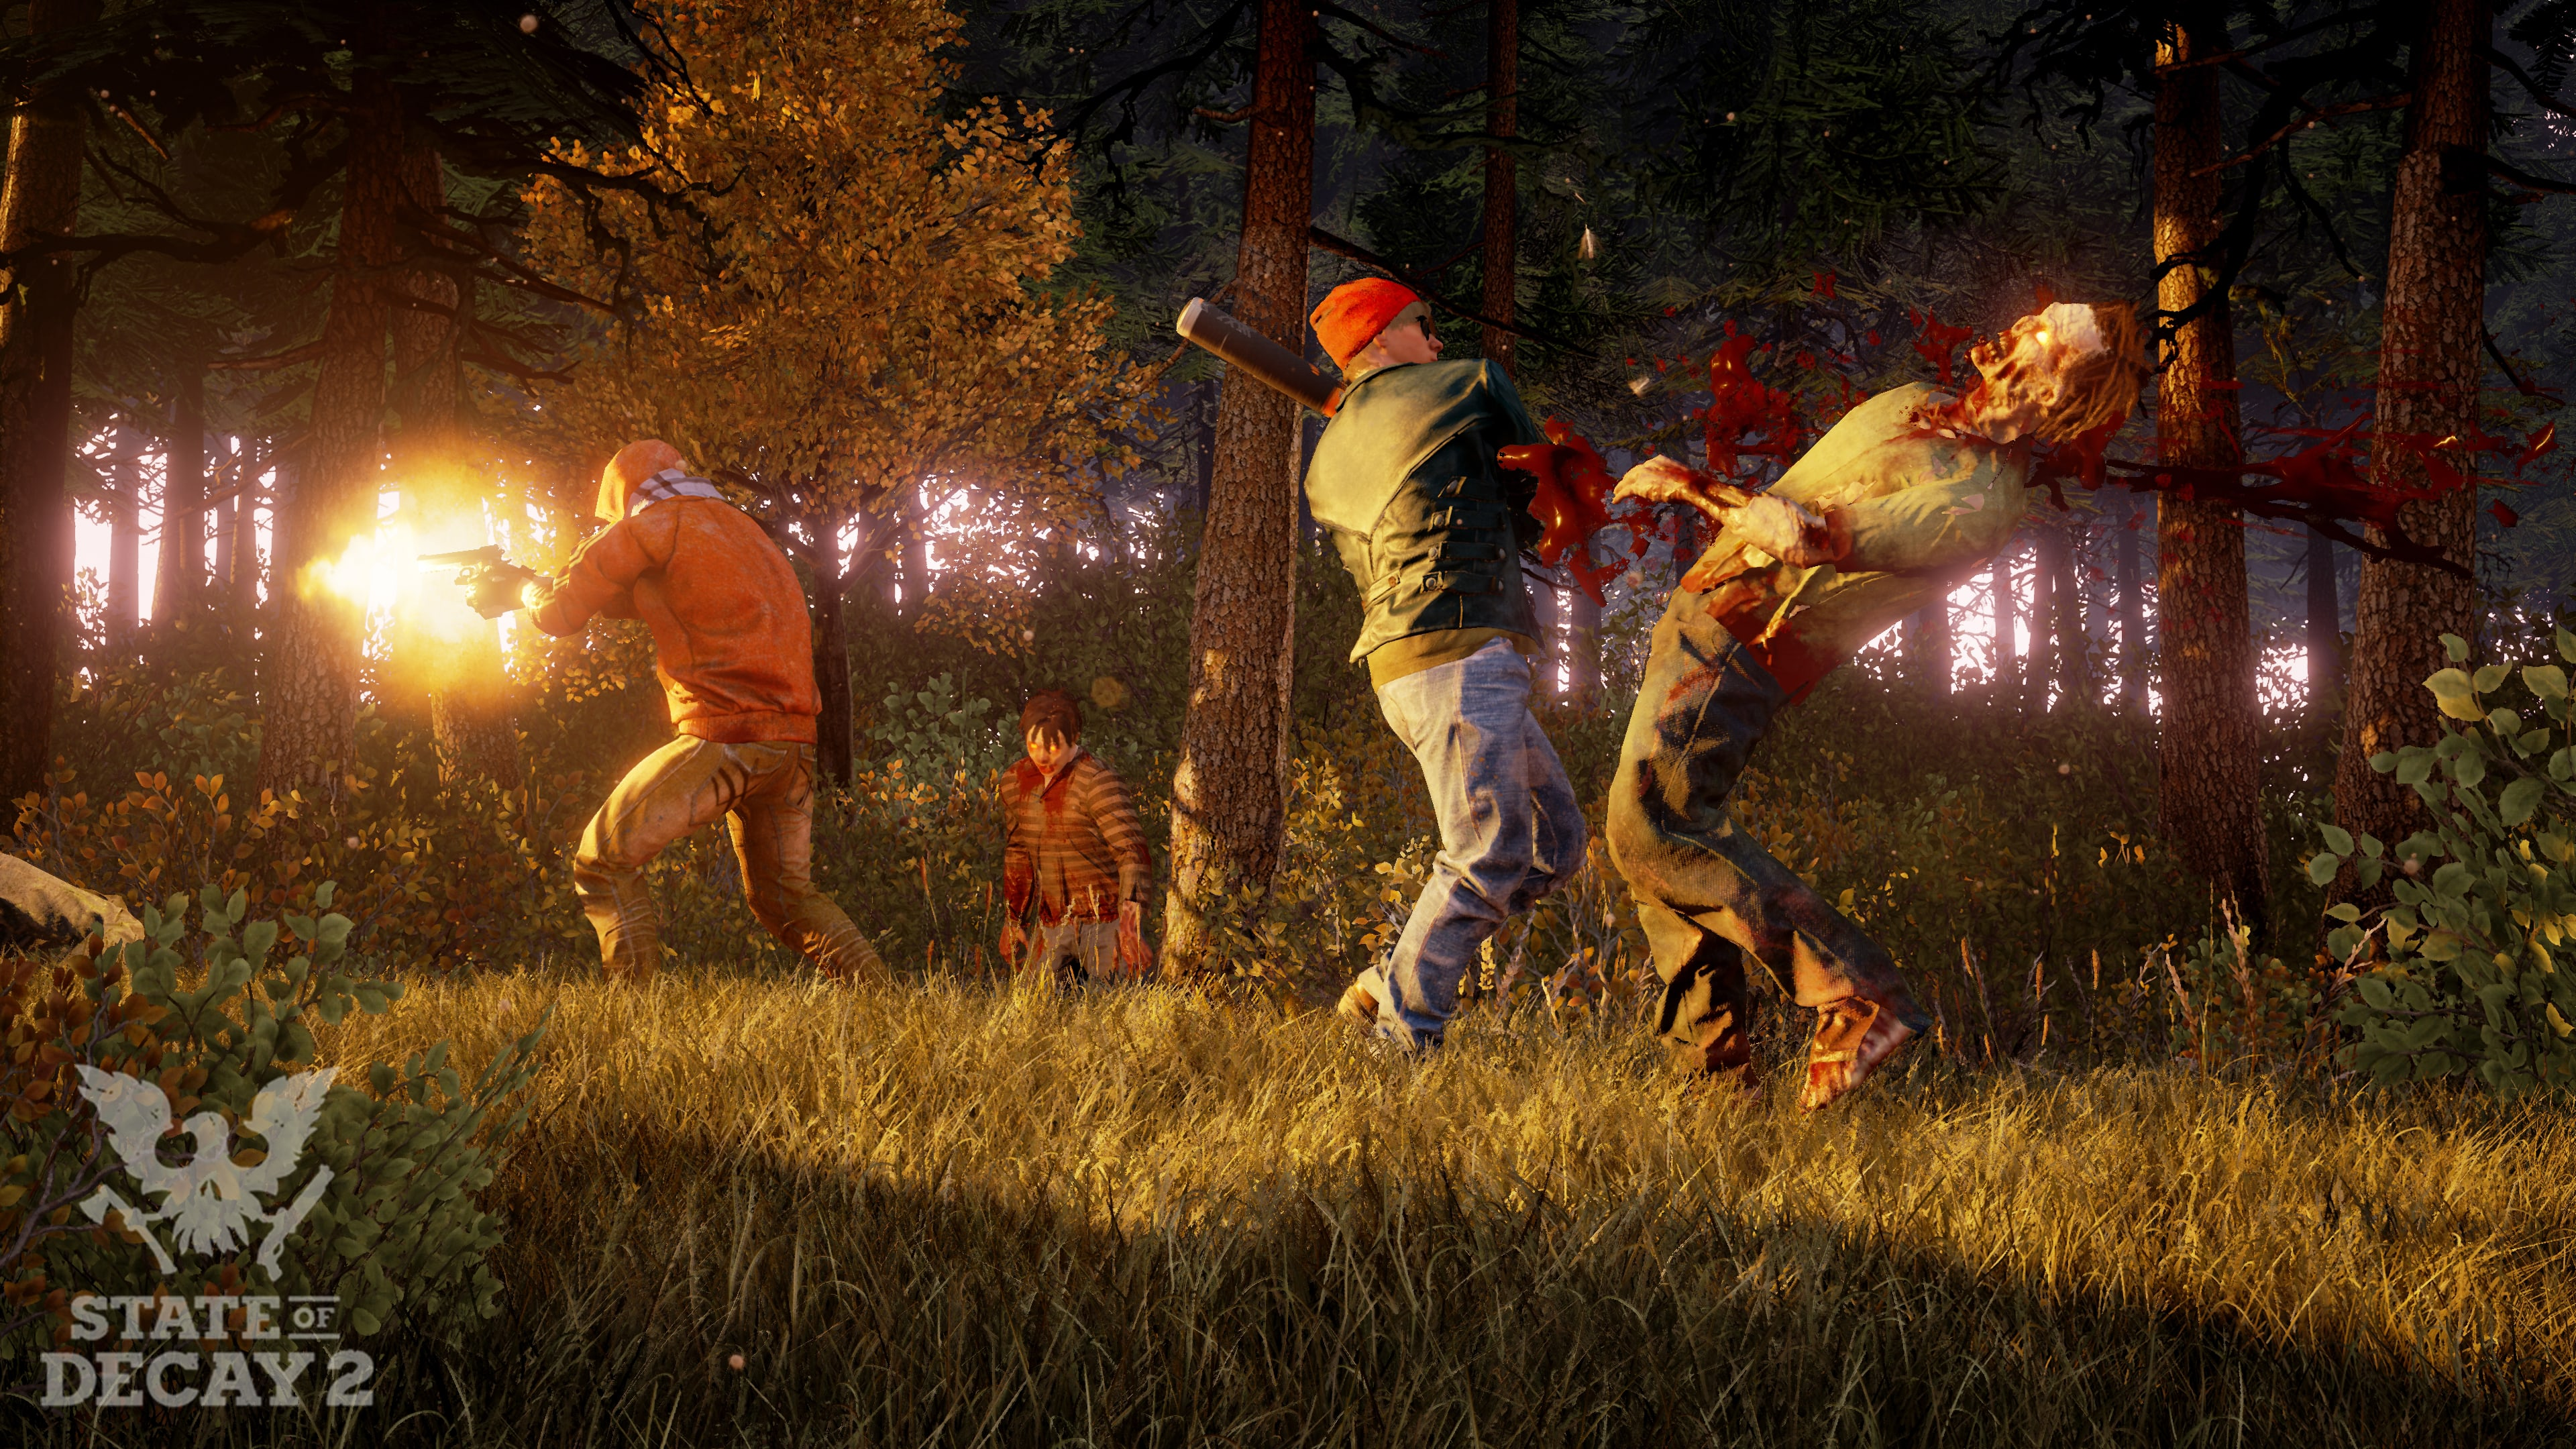 State of Decay 2 still getting impressive updates